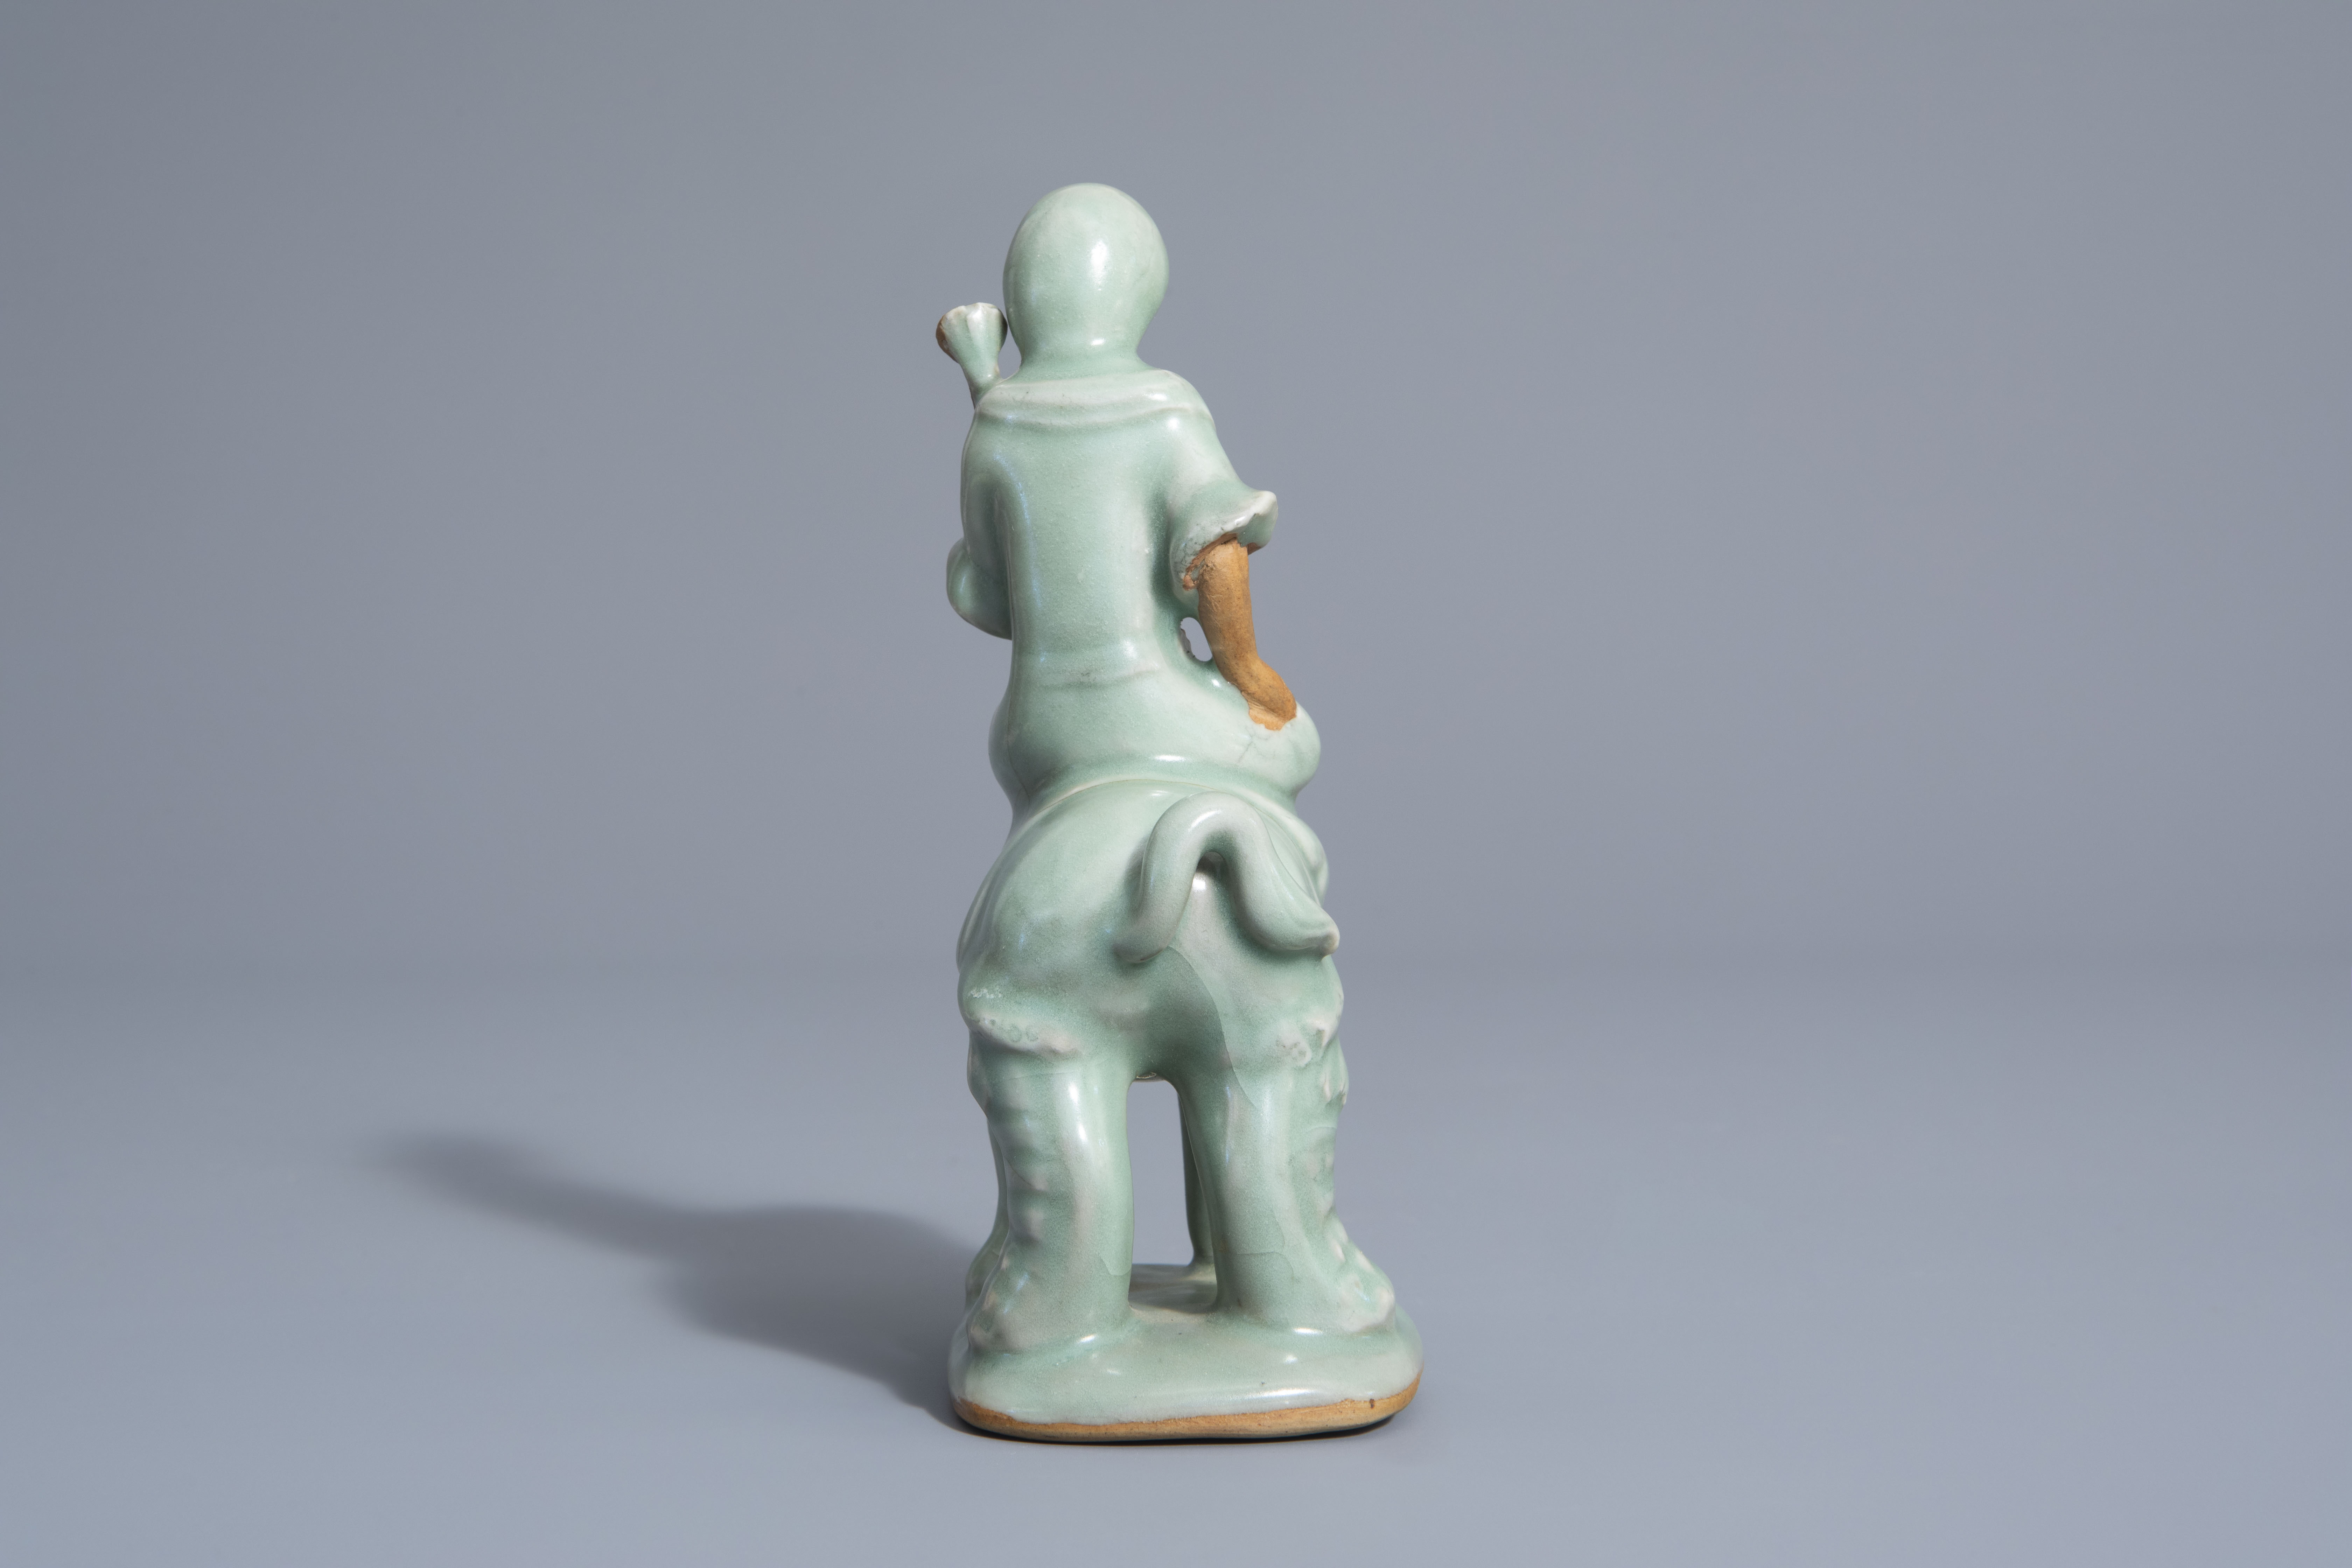 A Chinese celadon glazed group, 19th/20th C. - Image 3 of 7